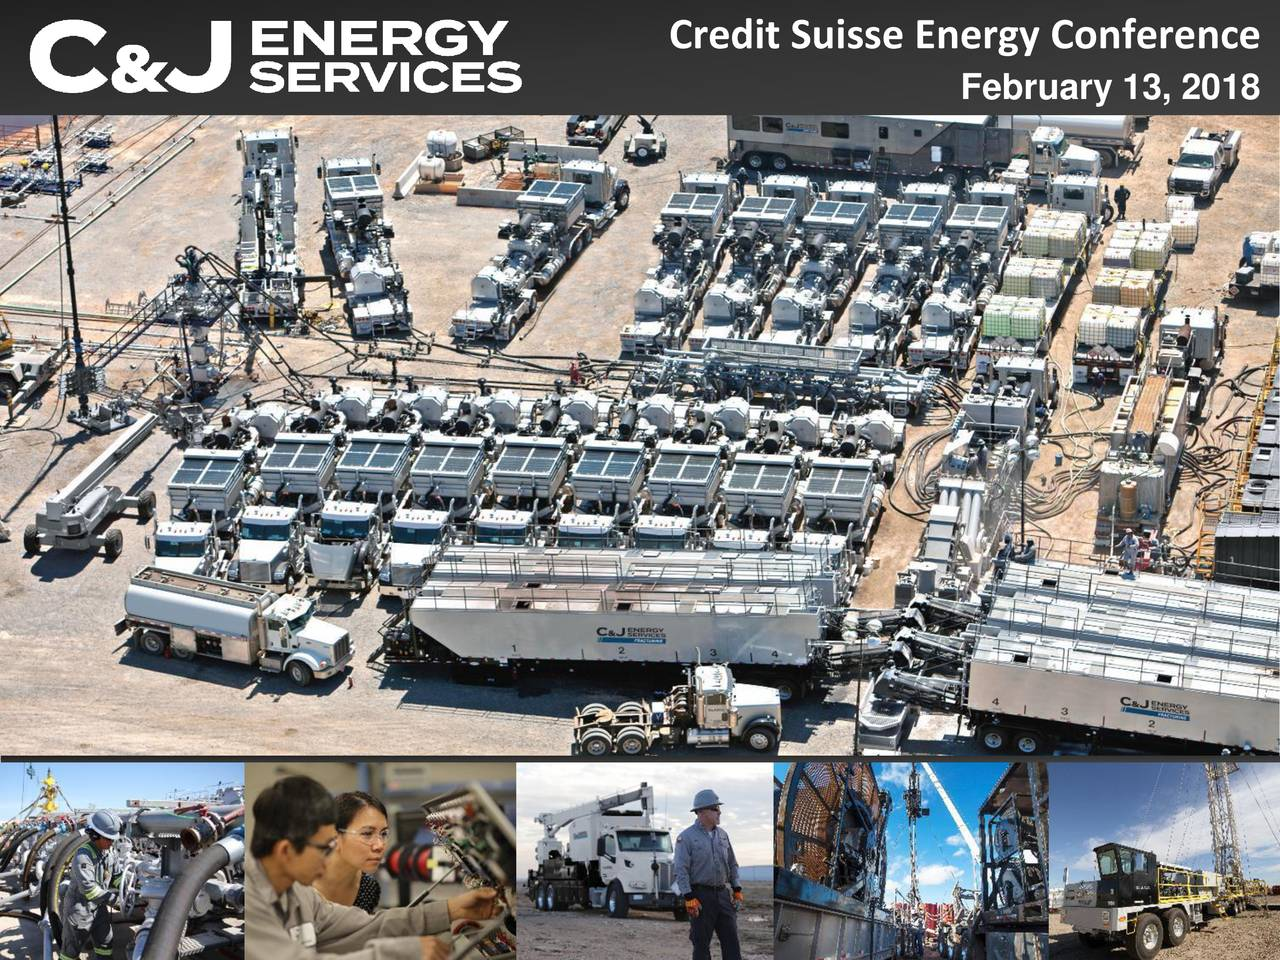 C&J Energy (CJ) Presents At 23rd Annual Credit Suisse Energy